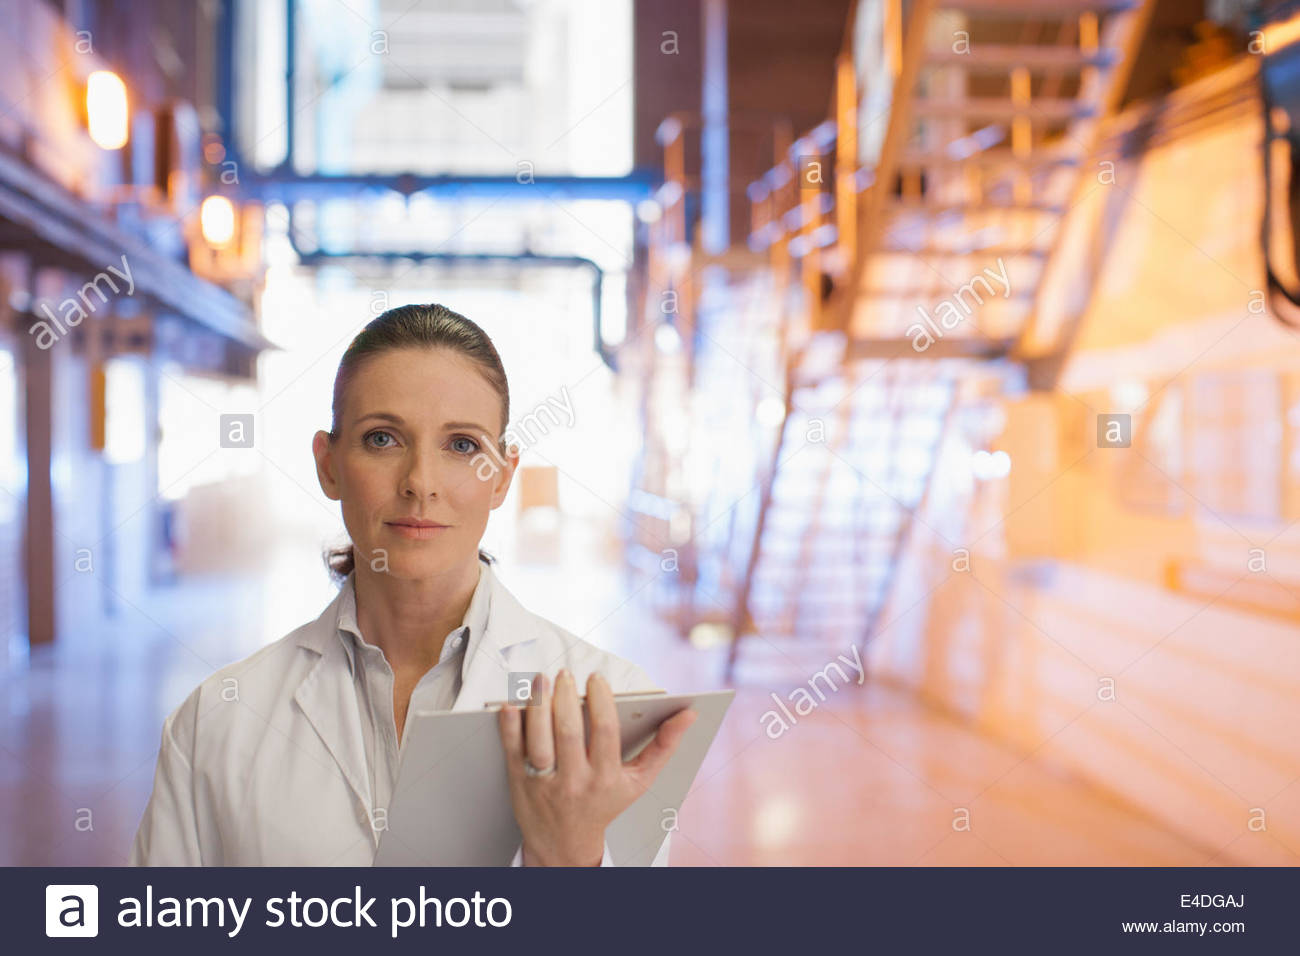 Scientist standing with clipboard in factory - Stock Image